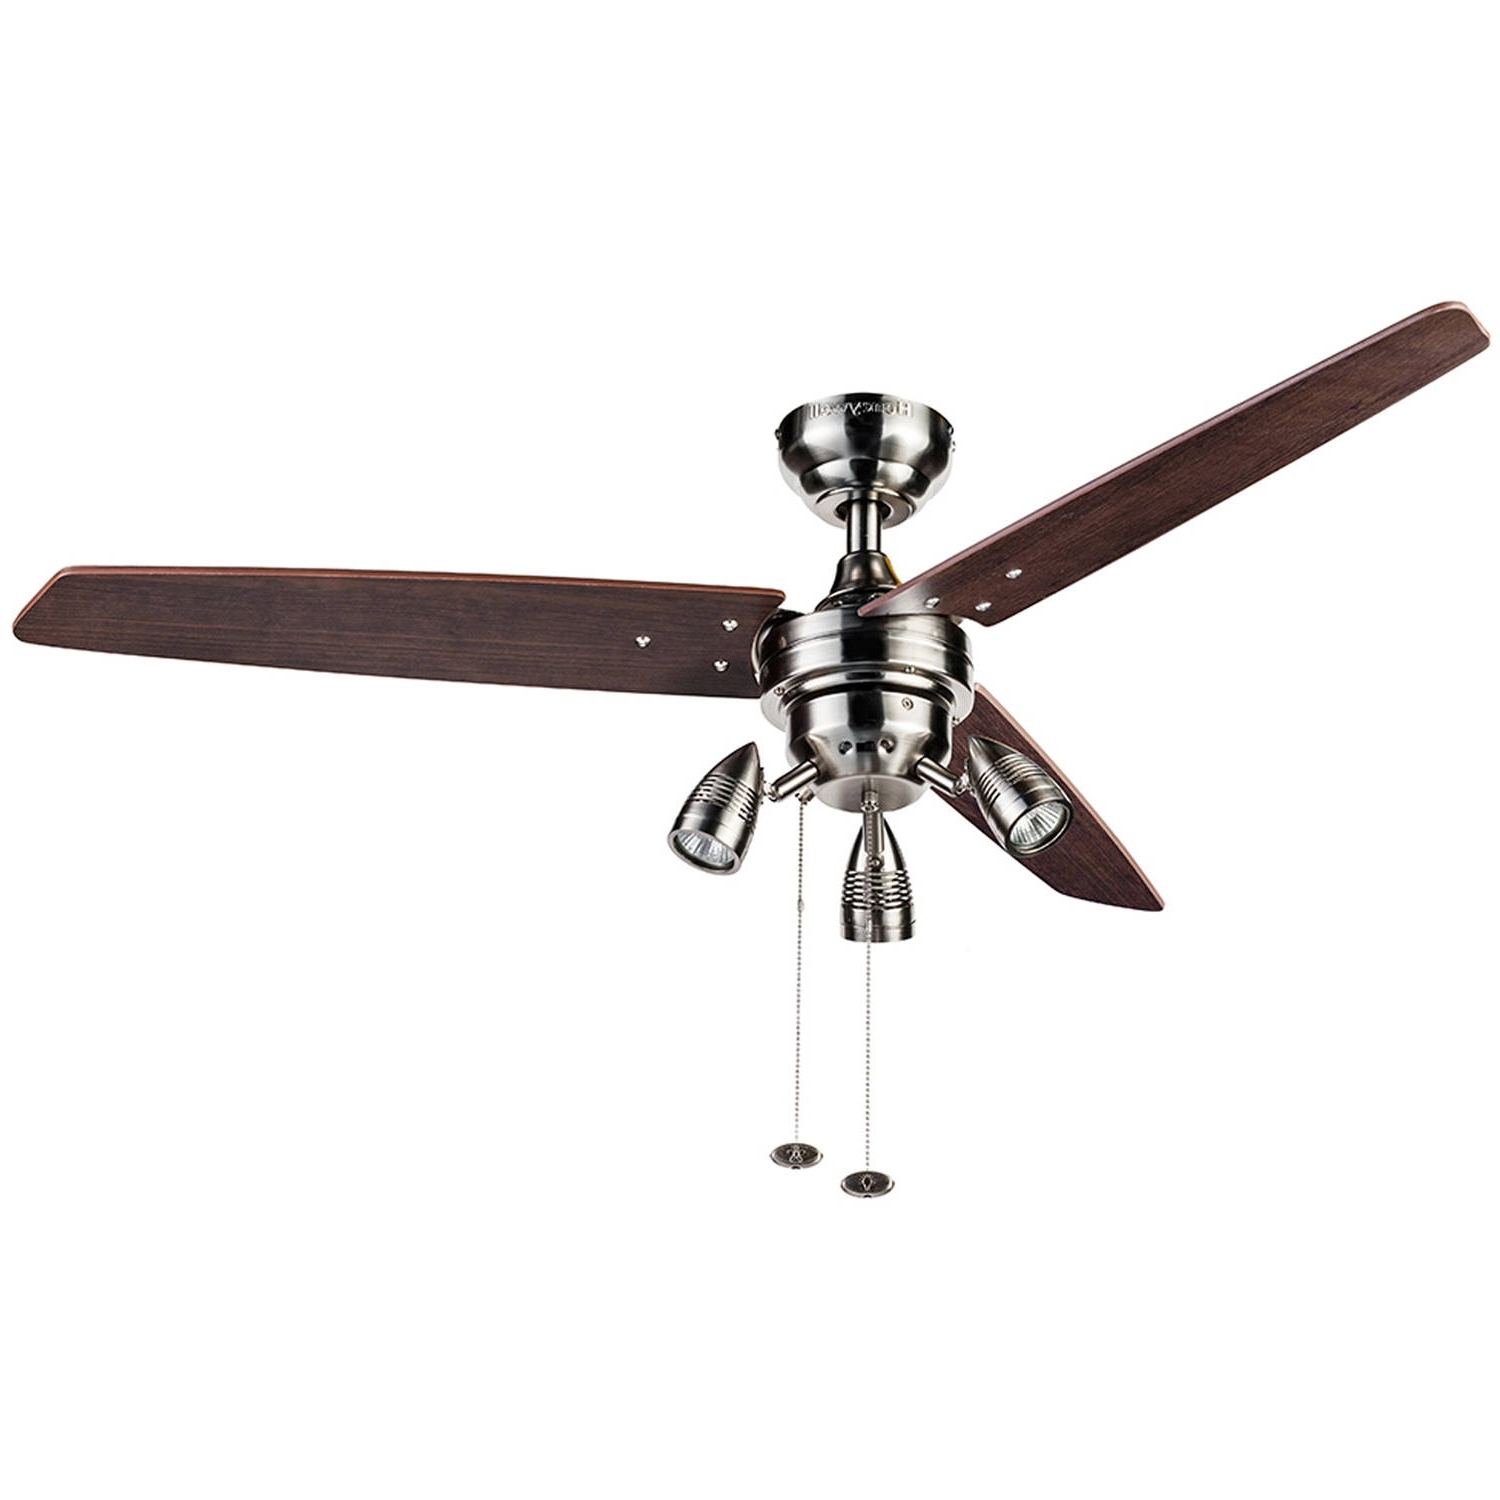 """Latest Outdoor Ceiling Fans With Lights At Walmart Regarding 42"""" Mainstays Hugger Indoor Ceiling Fan With Light, White – Walmart (View 3 of 20)"""